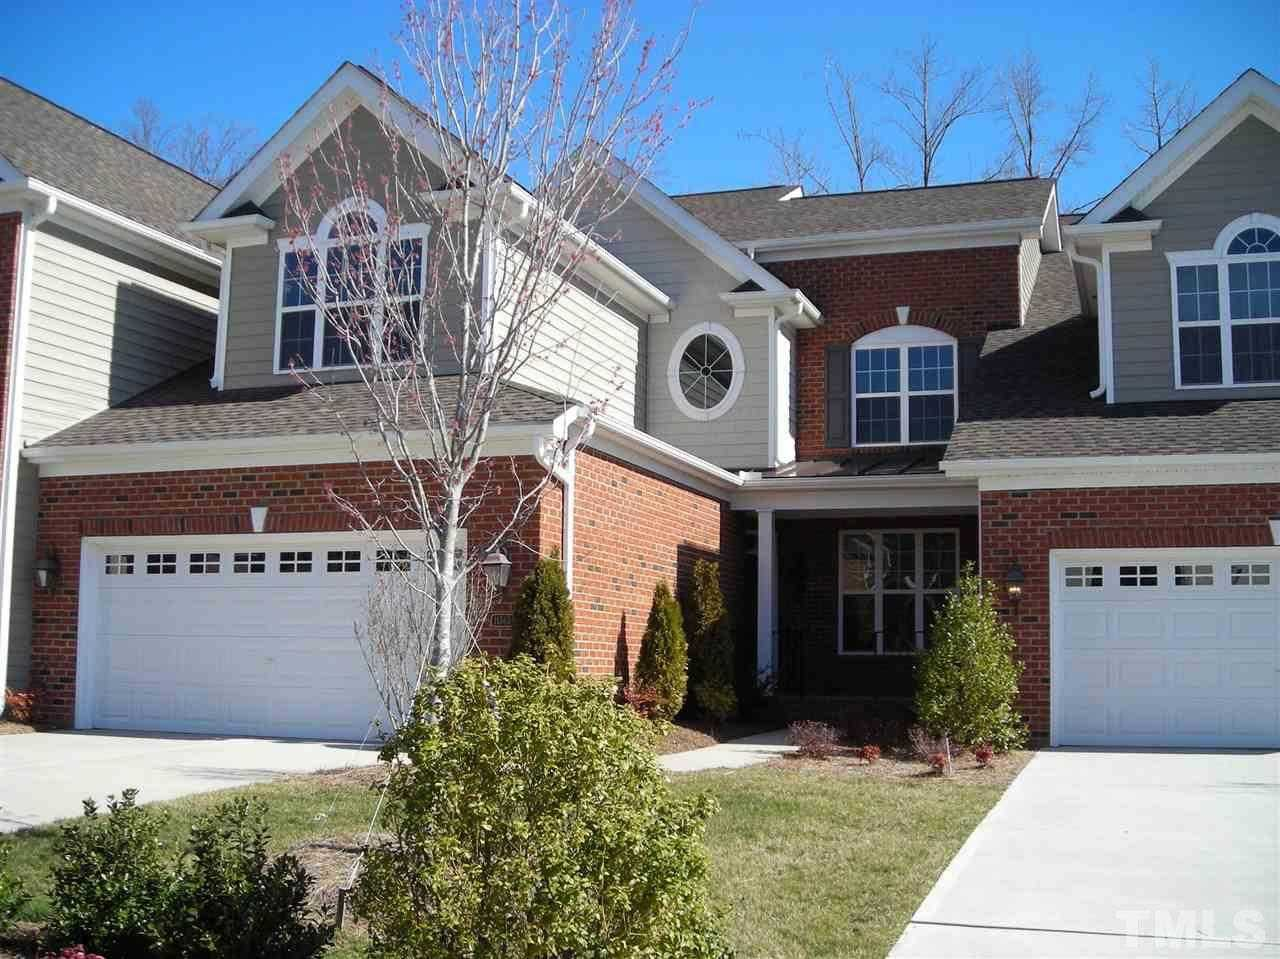 $2,500 - 3Br/4Ba -  for Sale in Brier Creek, Raleigh